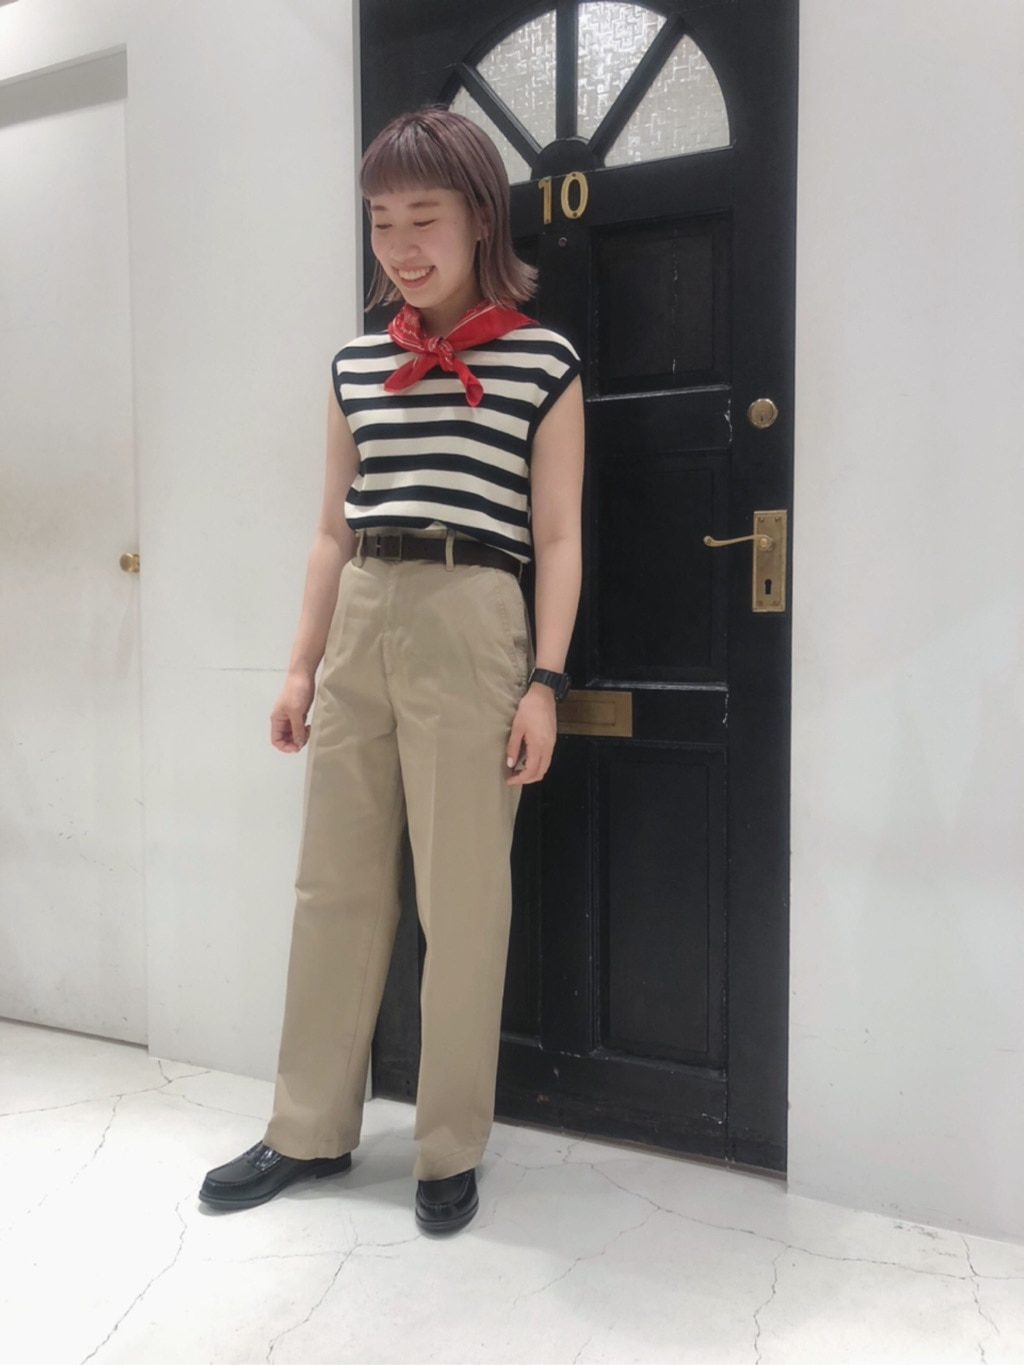 Dot and Stripes CHILD WOMAN ルクアイーレ 身長:157cm 2020.07.22